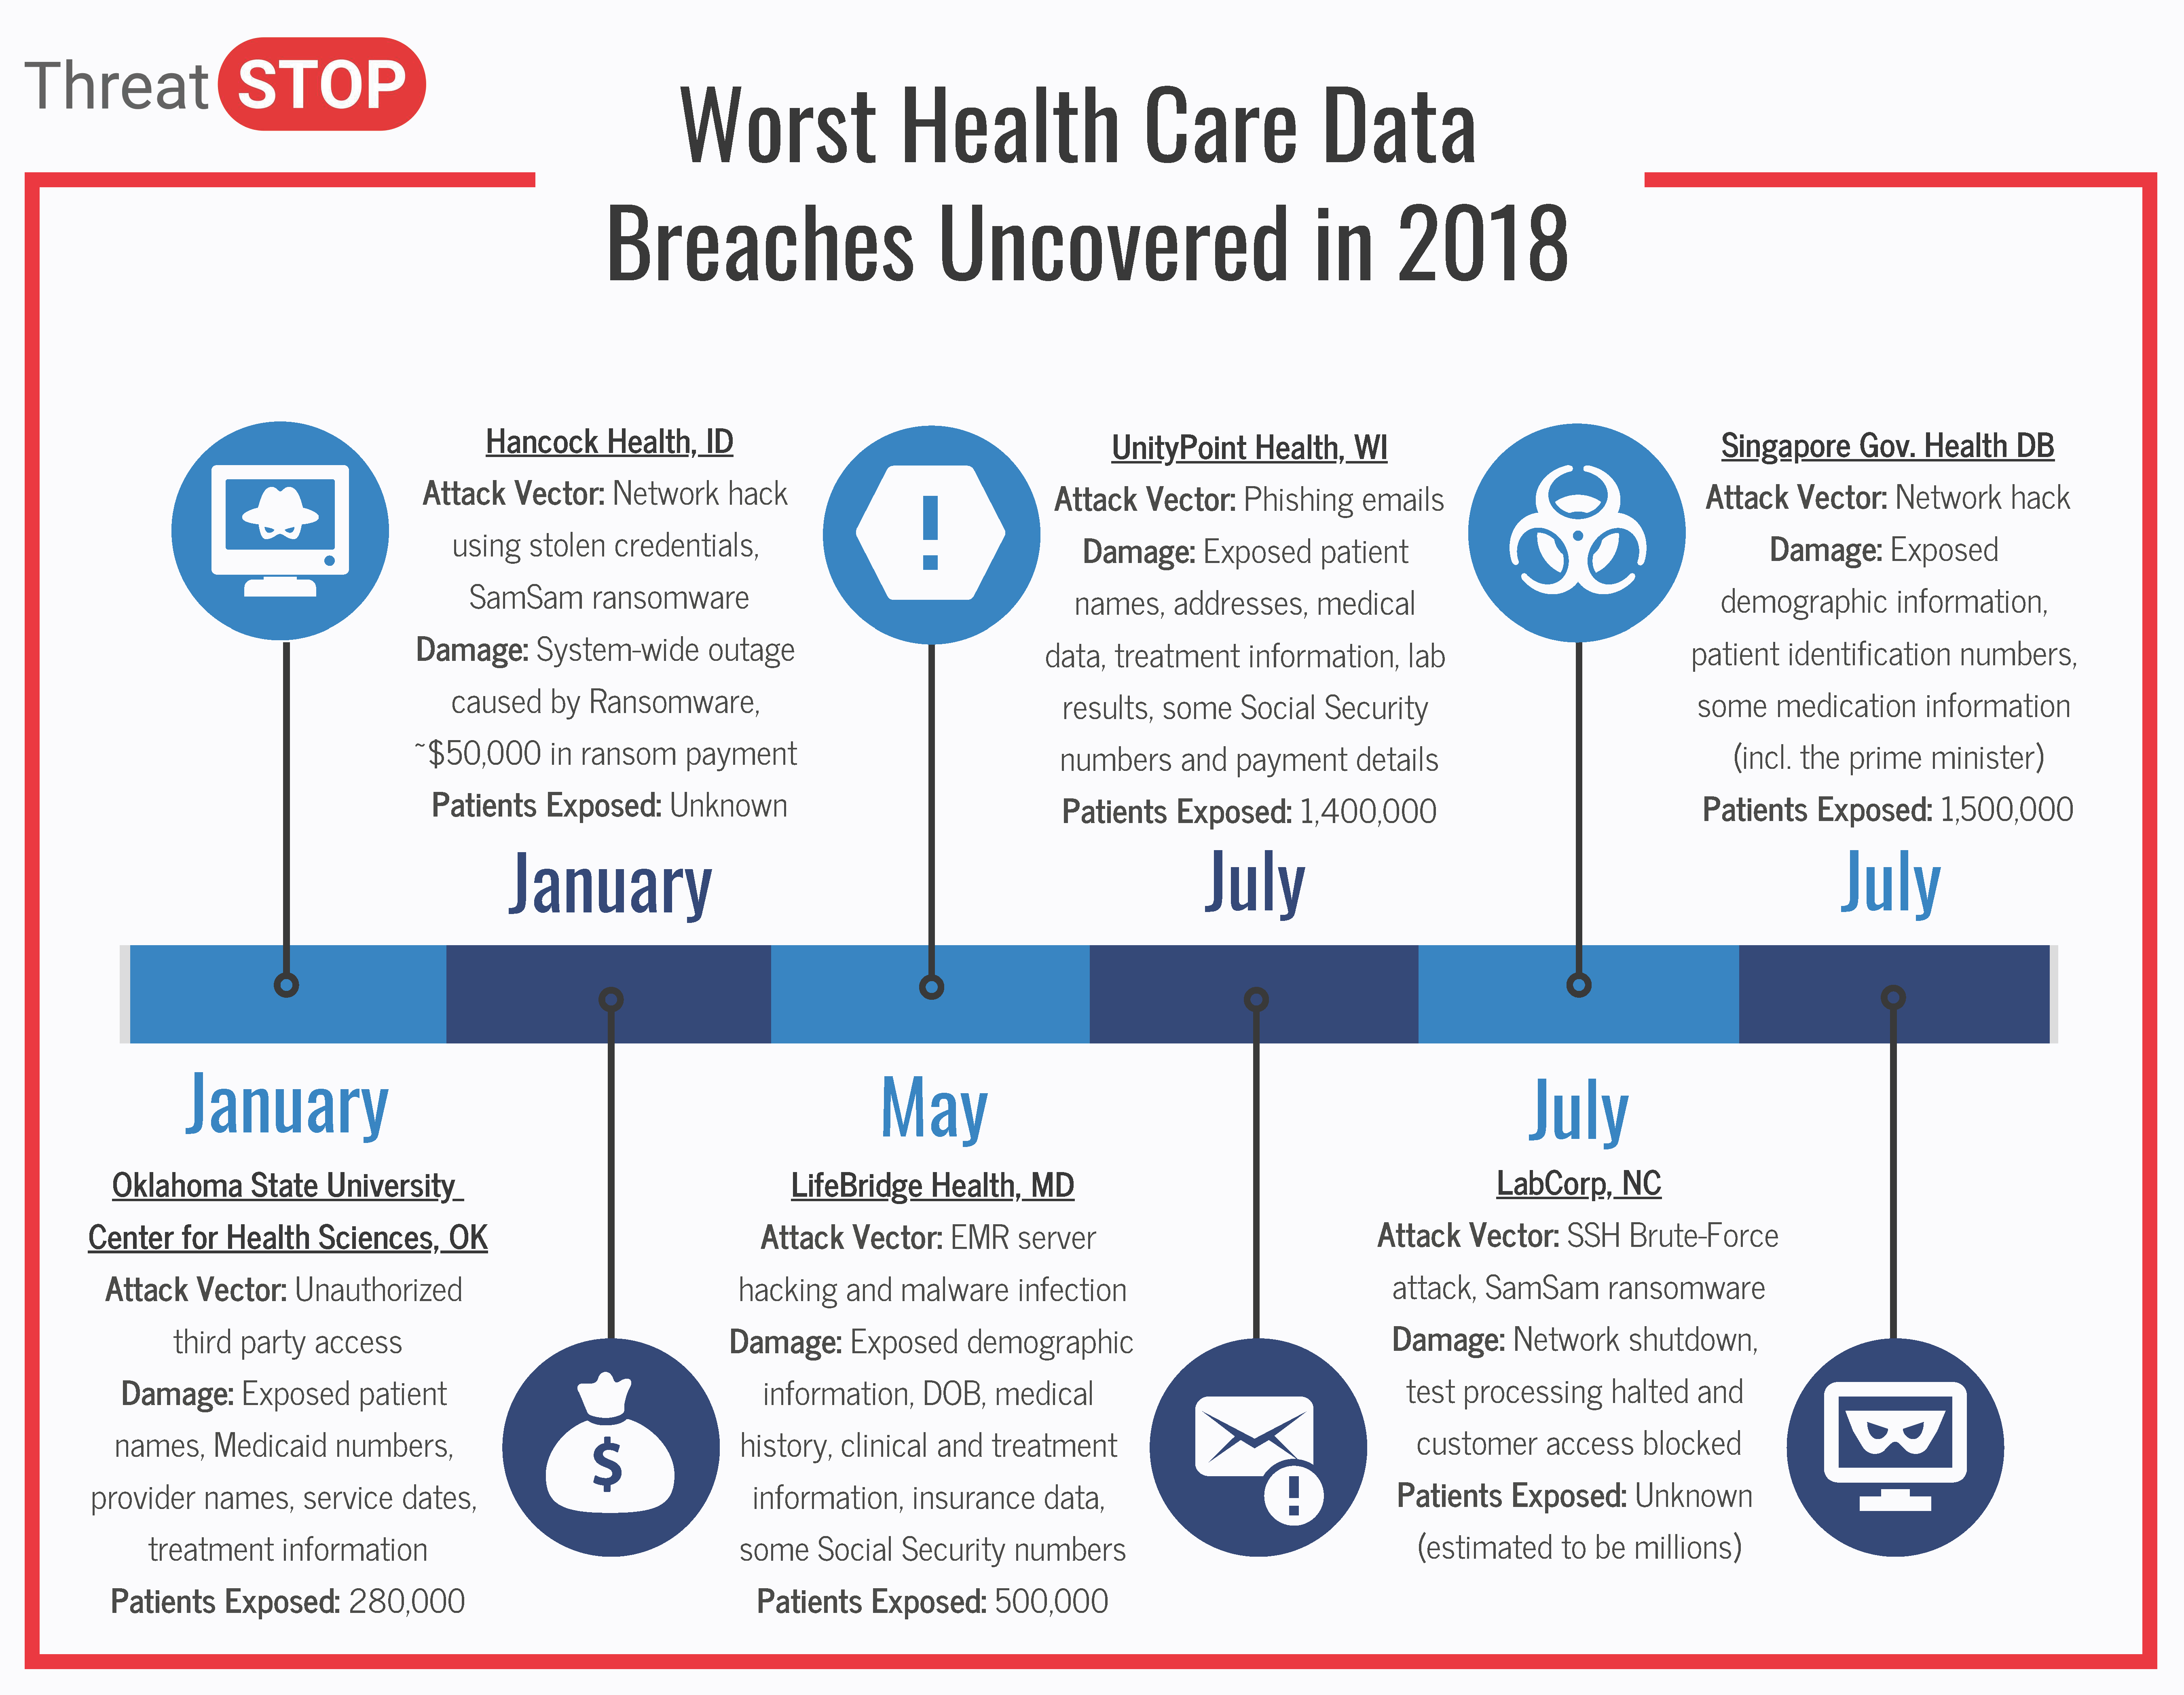 Worst Health Care Data Breaches Uncovered in 2018_PNG